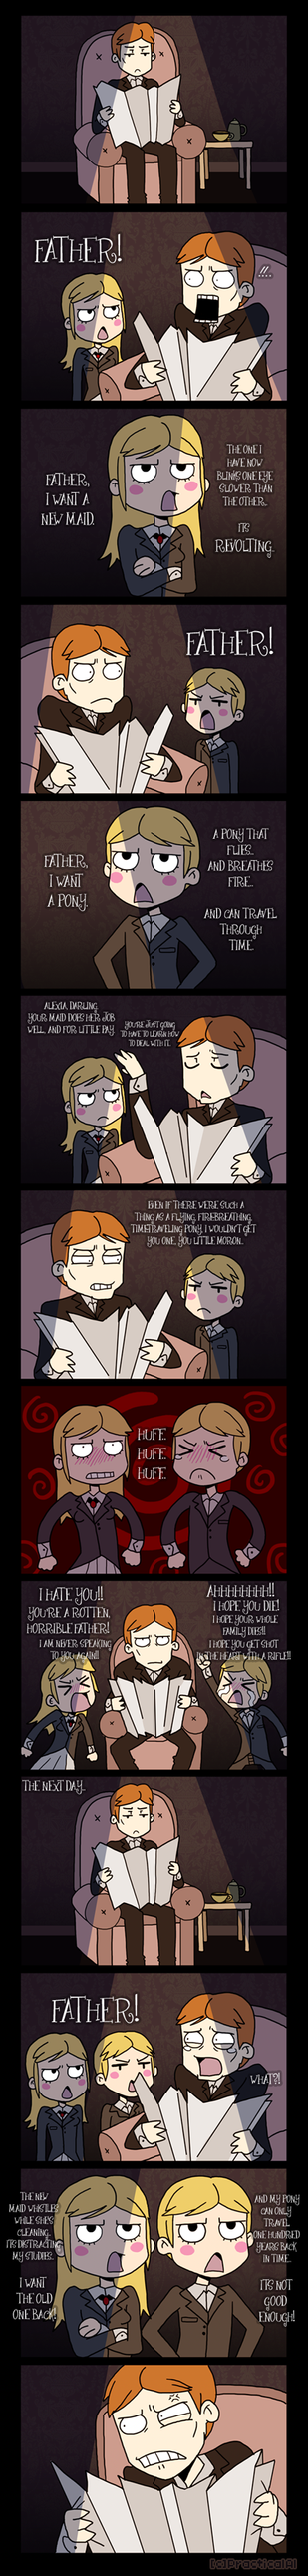 RE - Comic 002 by PracticalAl